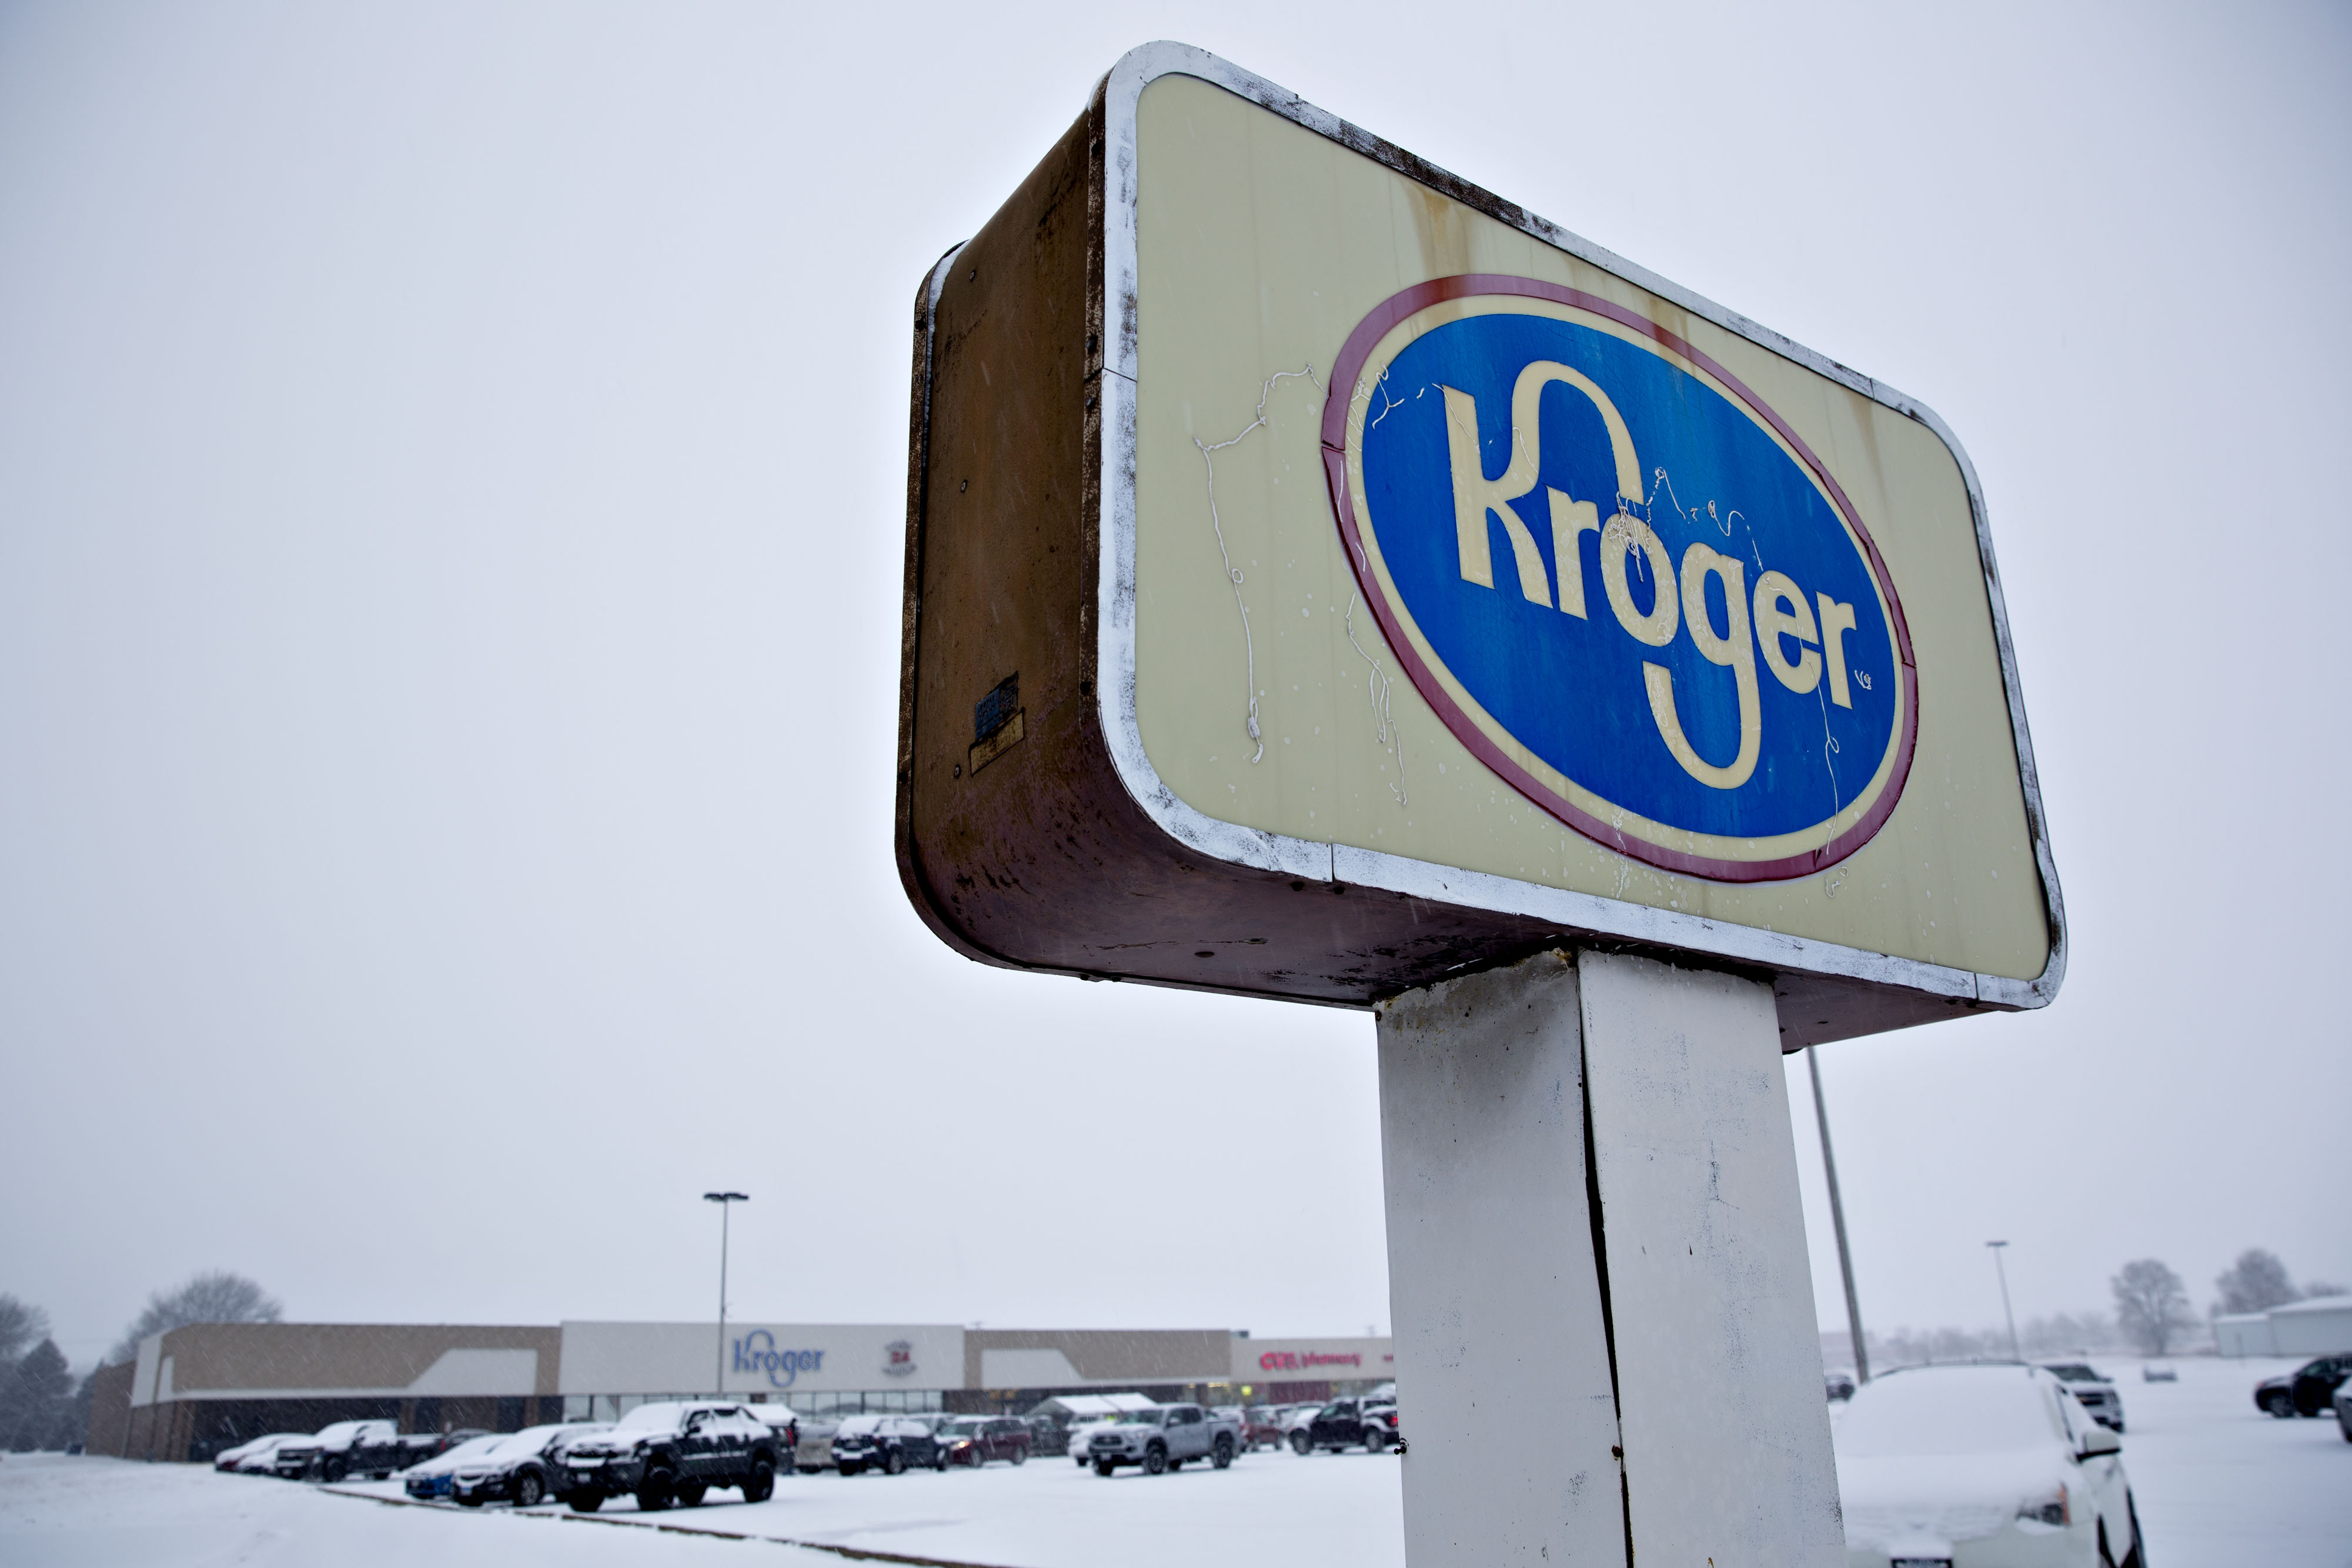 Kroger Co. signage stands outside the company's supermarket in Sterling, Illinois, U.S., on Monday, Feb. 5, 2018. Kroger will sell its convenience-store business to EG Group for $2.15 billion, giving a British retailer an entry into the U.S. with stores such as Tom Thumb, Loaf 'N Jug and Kwik Shop. Photographer: Daniel Acker/Bloomberg via Getty Images